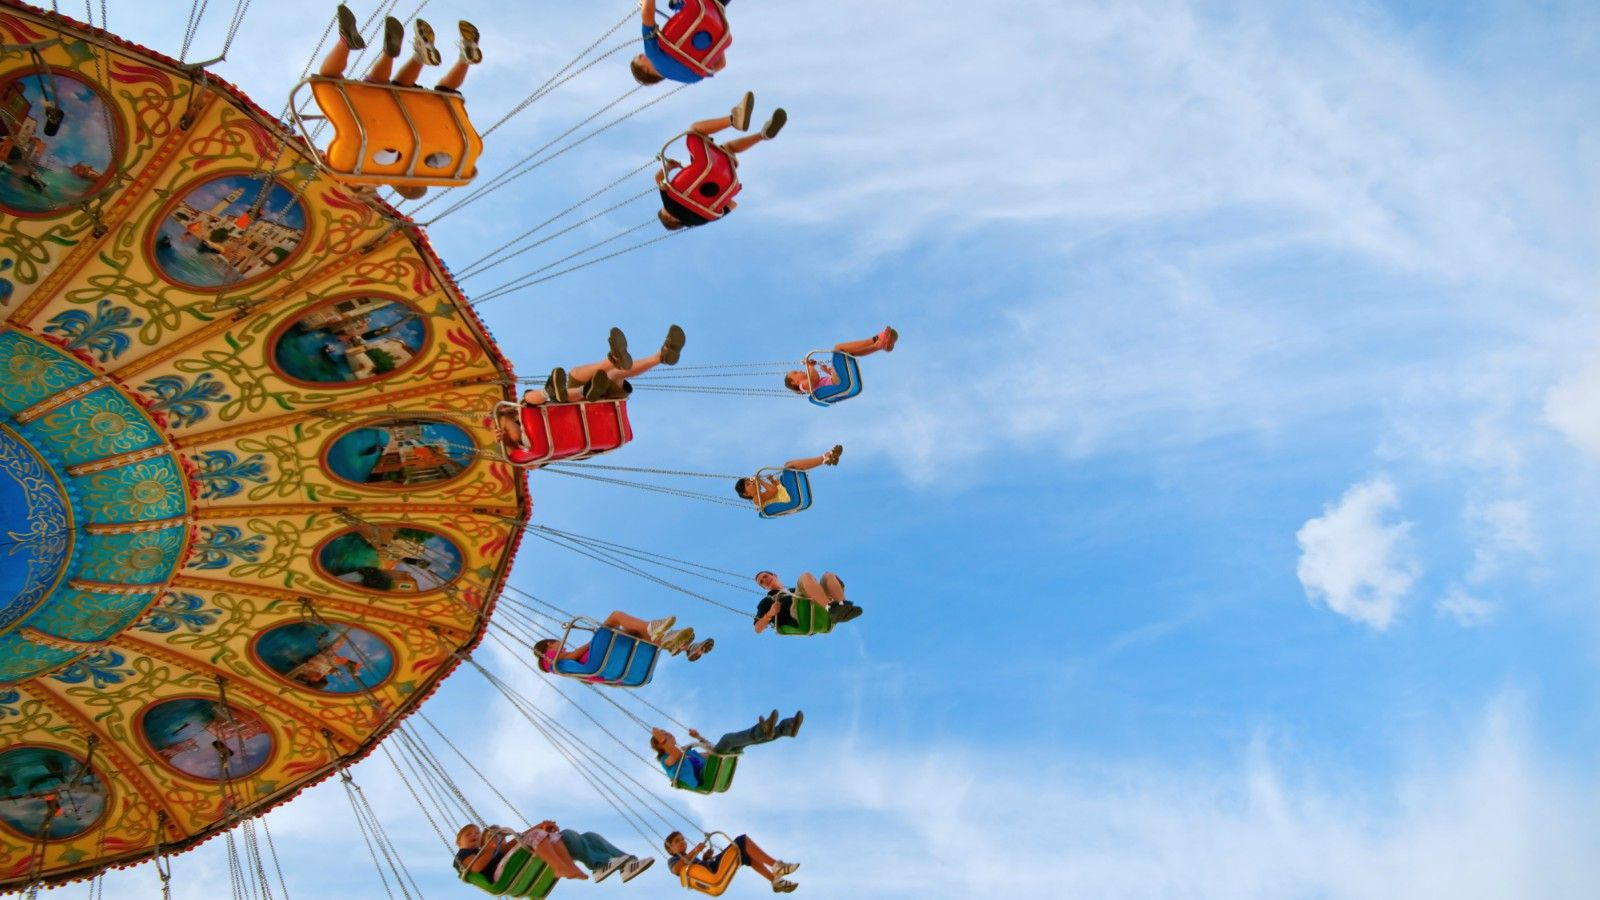 Things to do in Charlotte, NC - Amusement Park